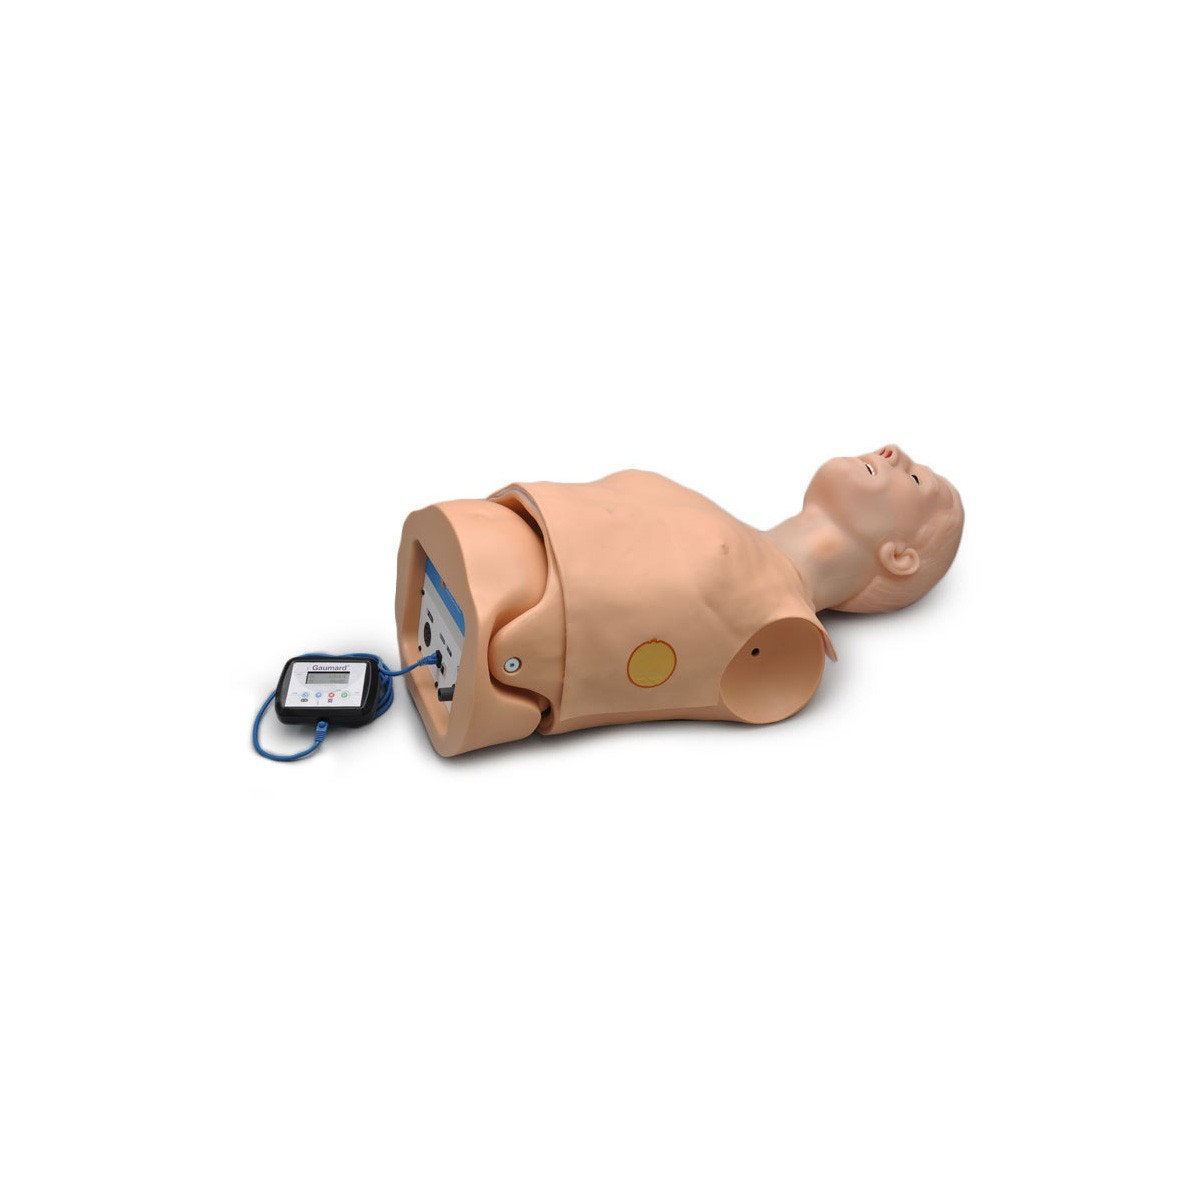 CPR+D Trainer